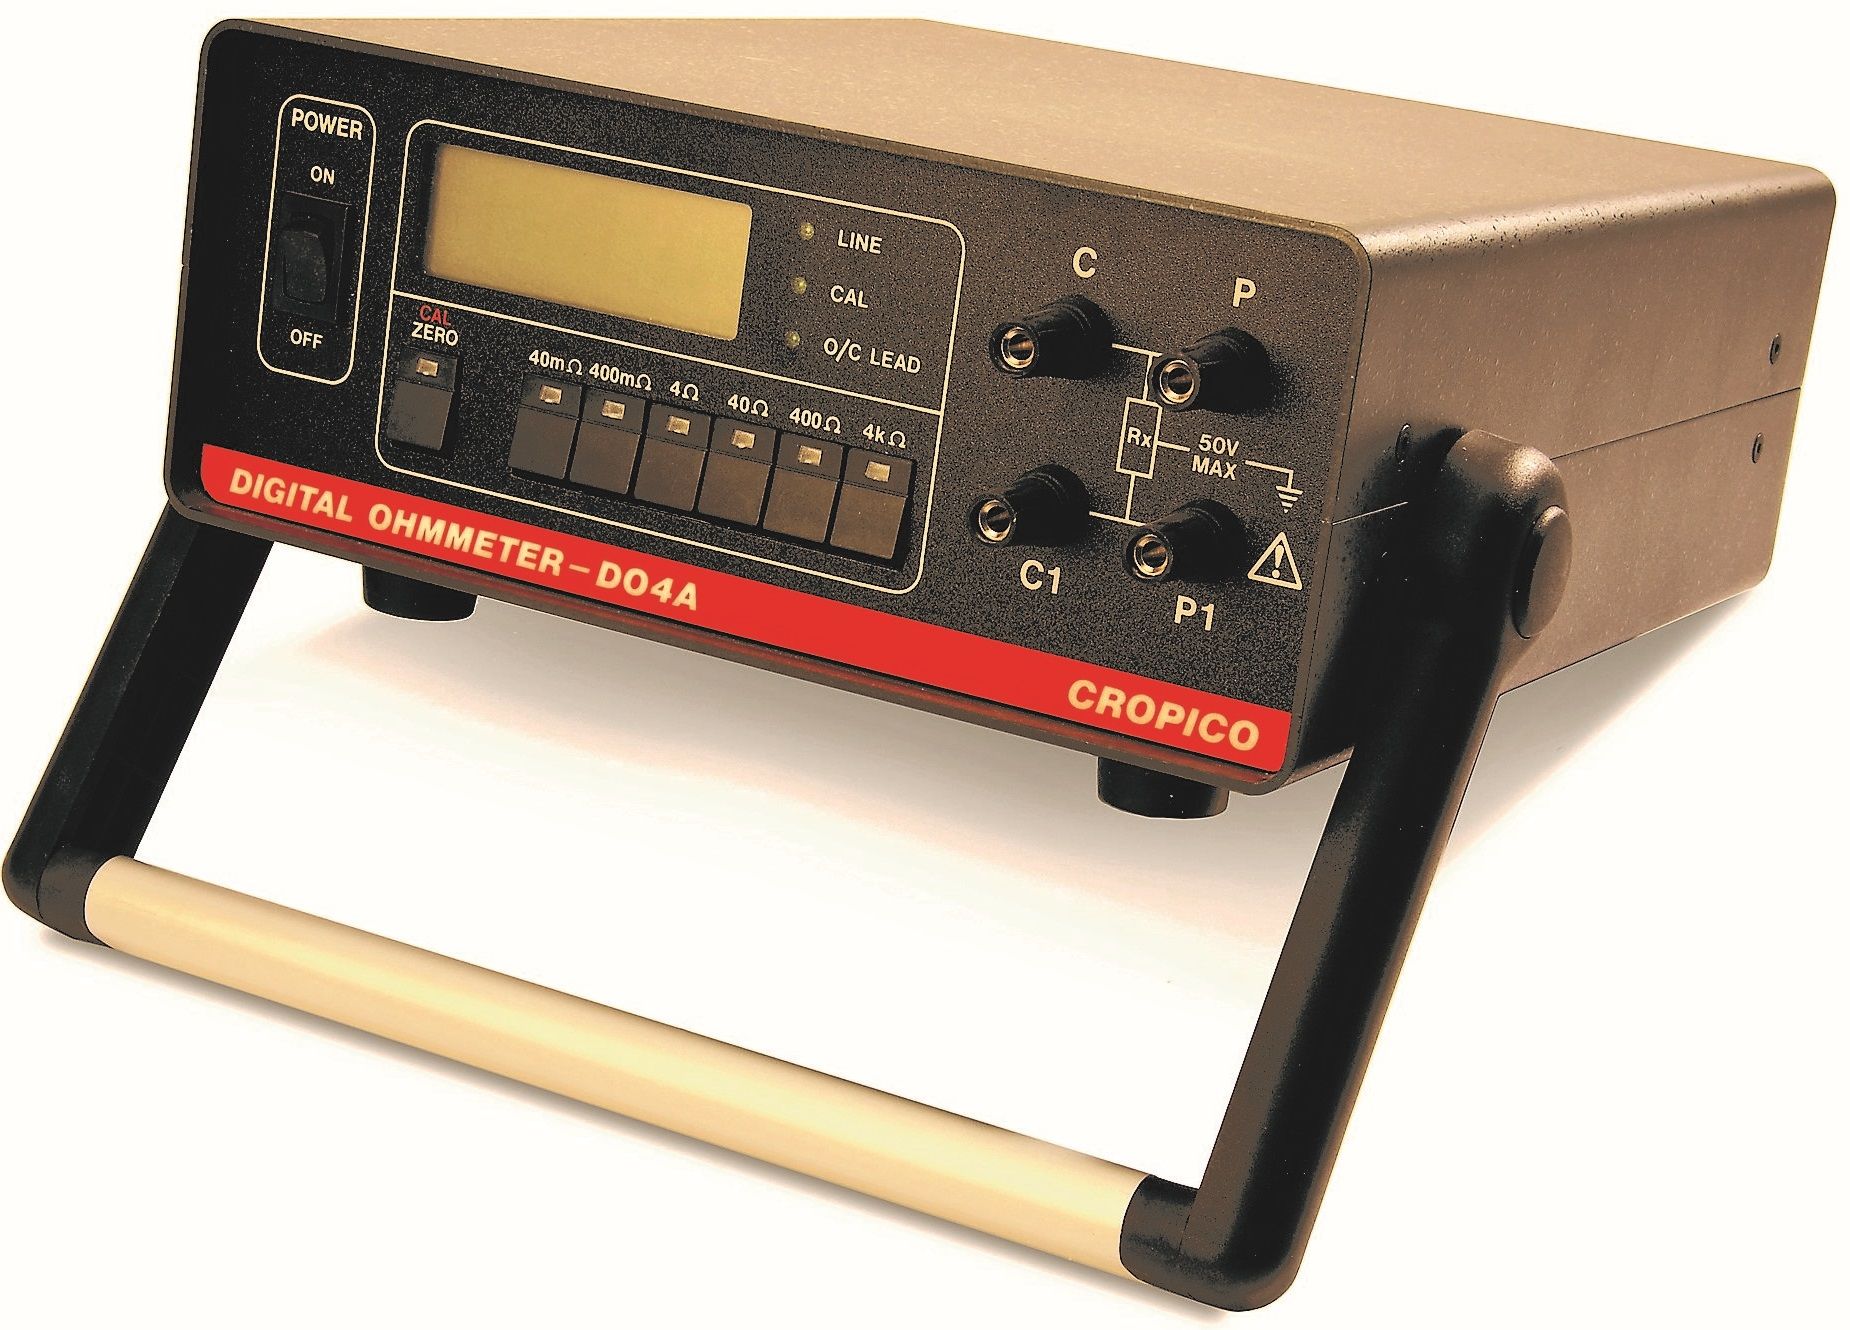 Cropico DO4A digital Ohmmeter